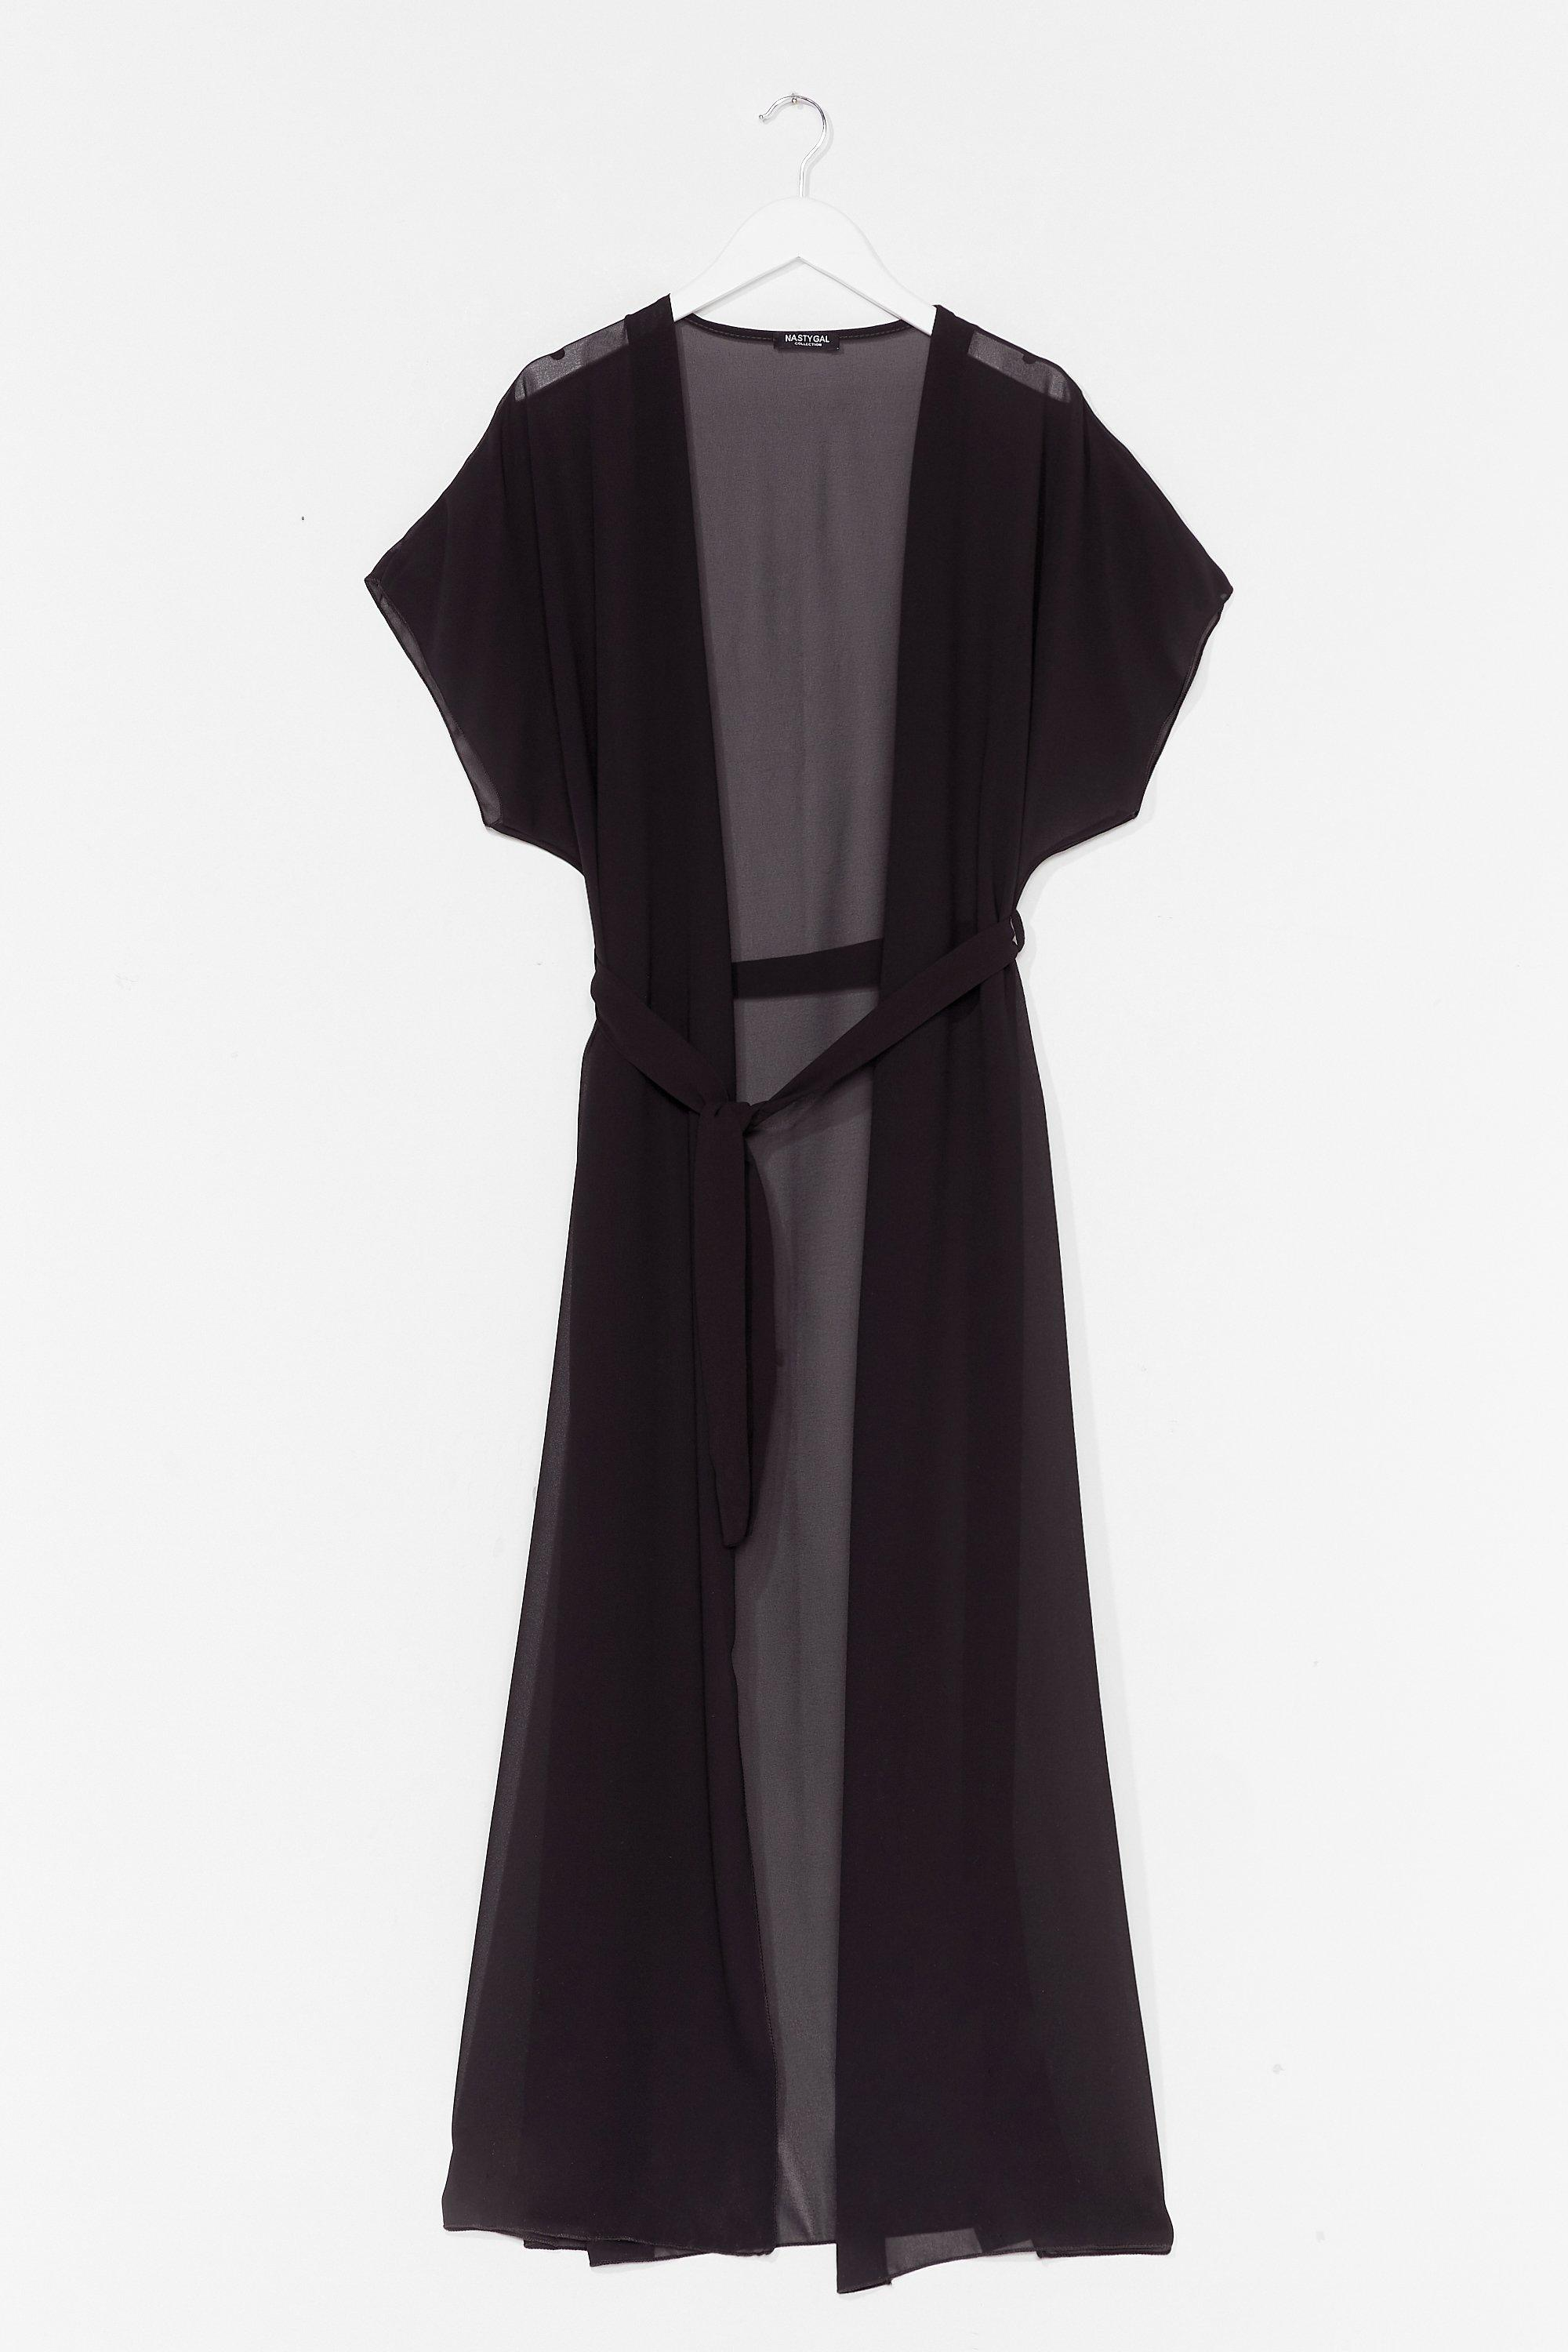 A Little Over the Top Maxi Cover-Up Jacket